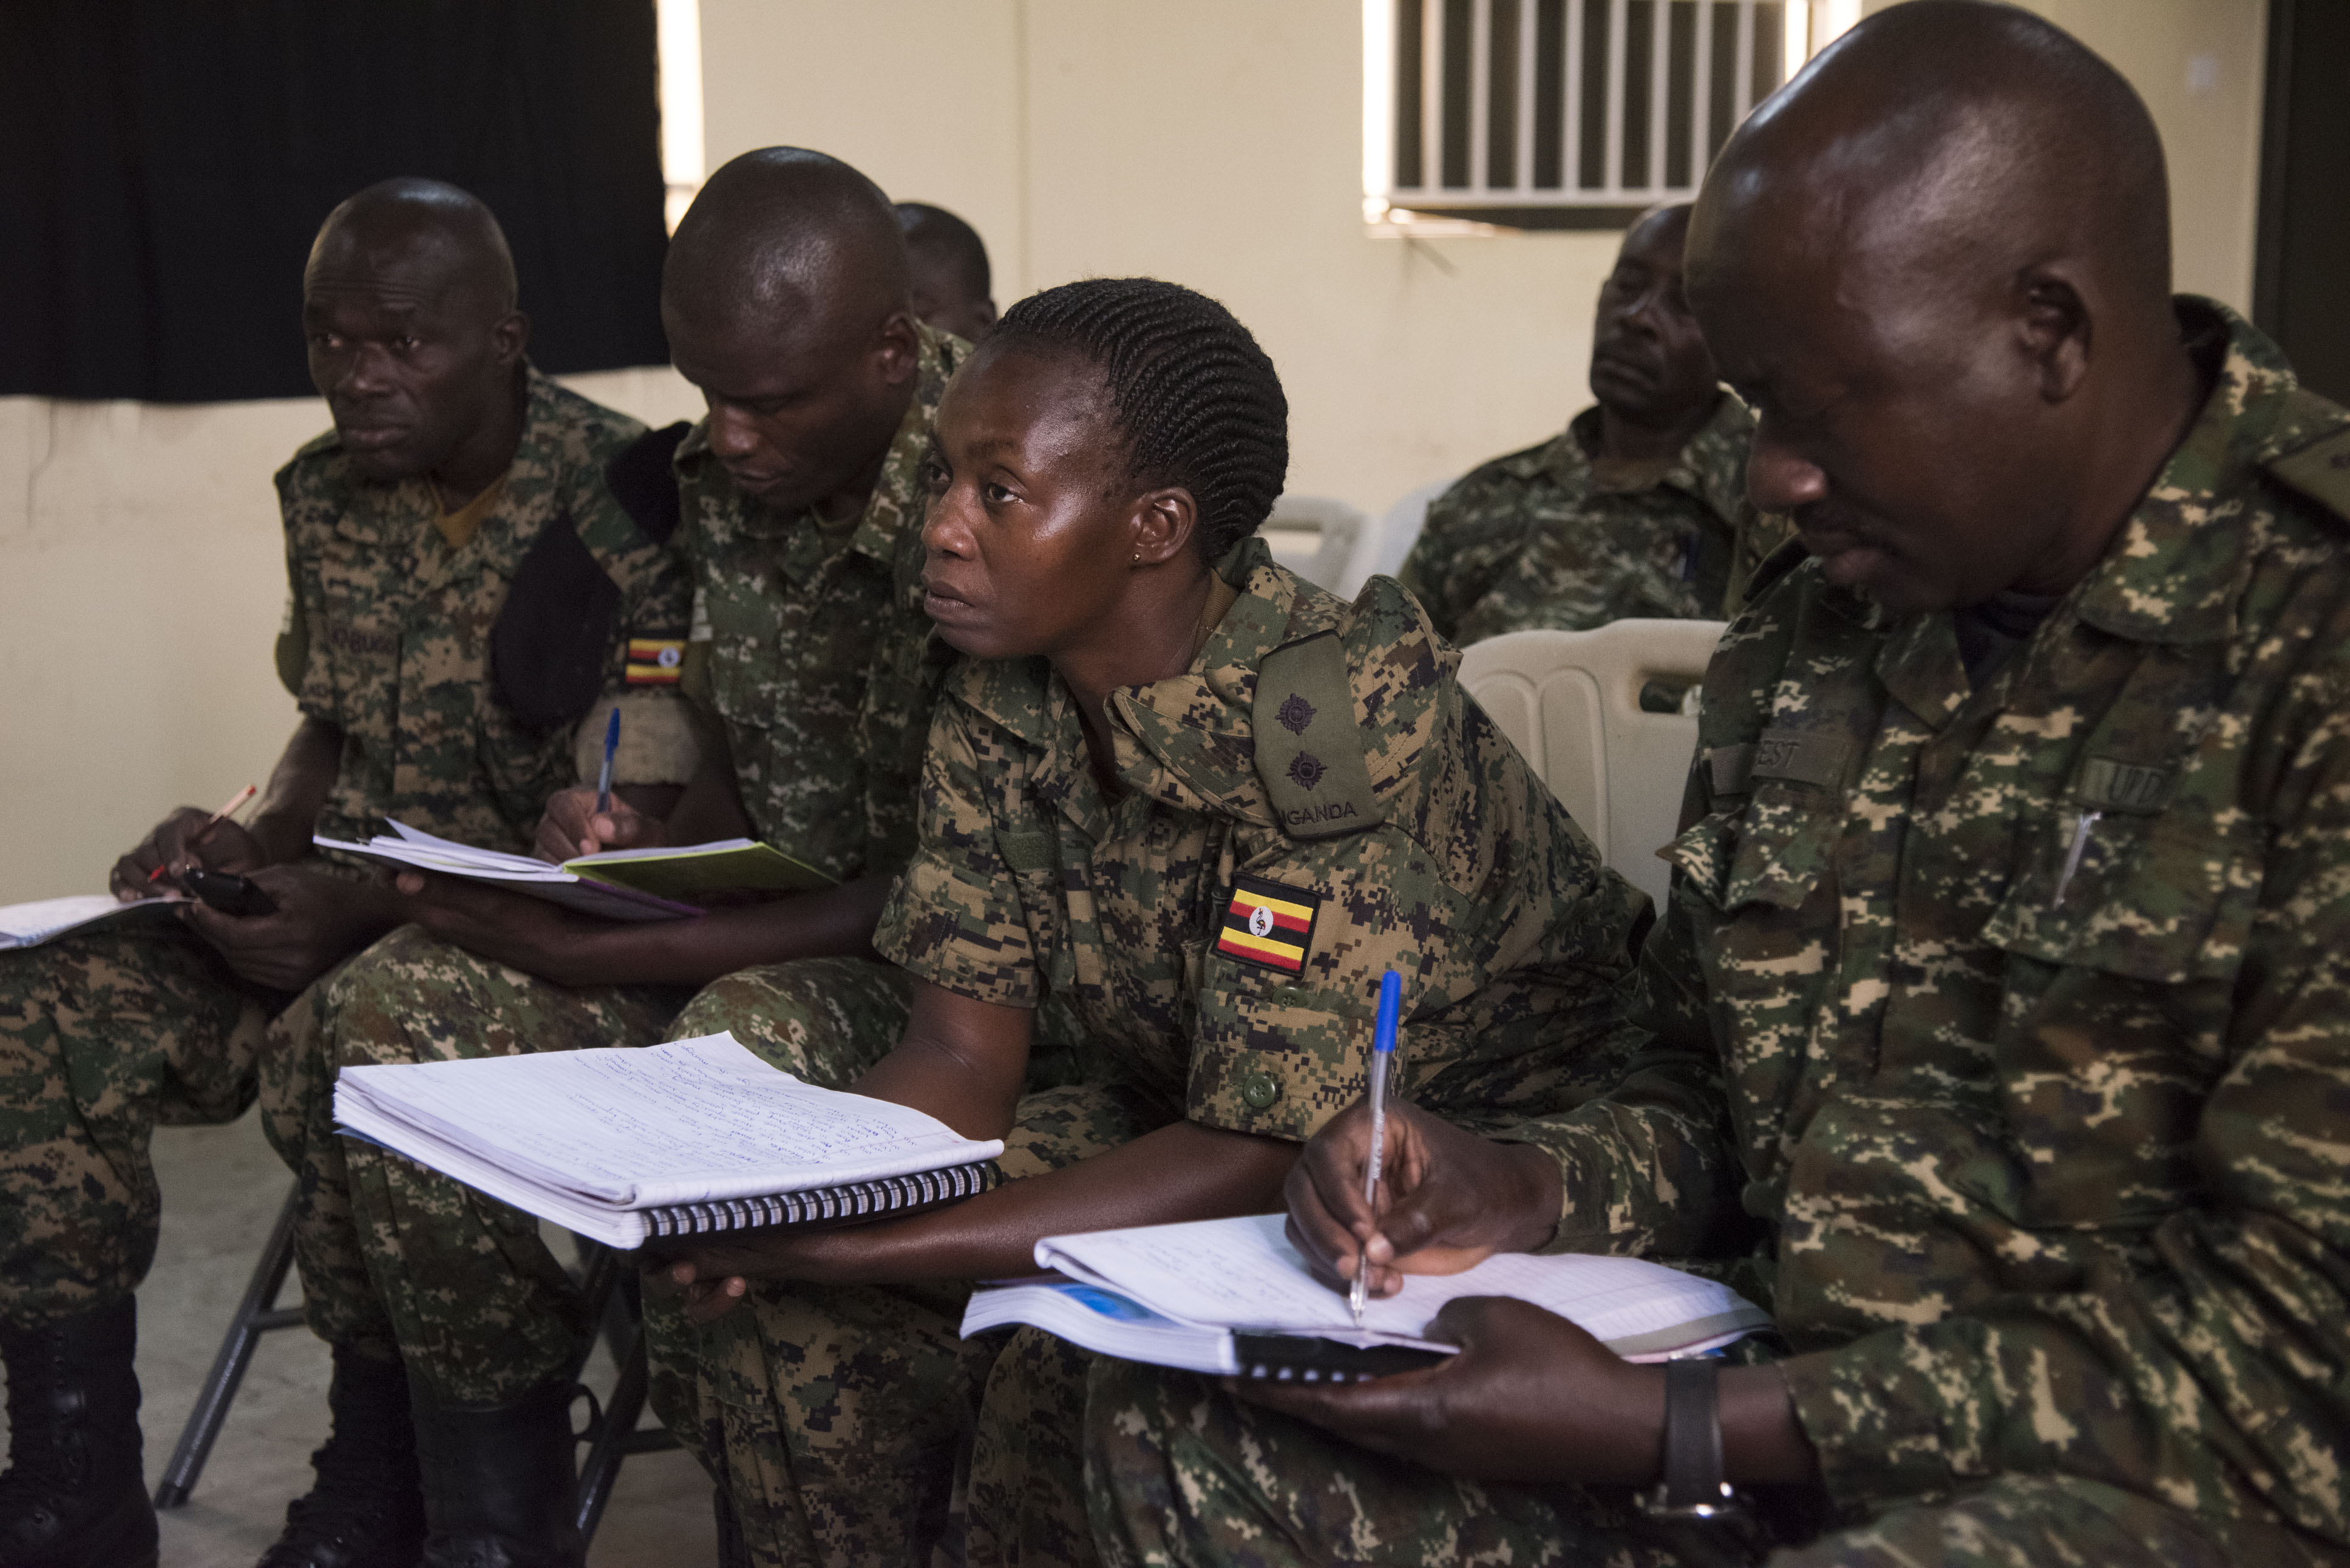 A Uganda People's Defence Force soldier leads a mock interview as part of a Civil-Military (CIMIC) course taught by U.S. Soldiers assigned to the 407th Civil Affairs (CA) Battalion, attached to the Combined Joint Task Force - Horn of Africa, Feb. 13, 2018. CJTF-HOA service members are forward deployed to Camp Singo, Uganda to advise and assist the UPDF in preparing Ugandan Battle Group 25 for an upcoming deployment in support of the African Union Mission in Somalia (AMISOM). (U.S. Air National Guard photo by Staff Sgt. Allyson L. Manners)